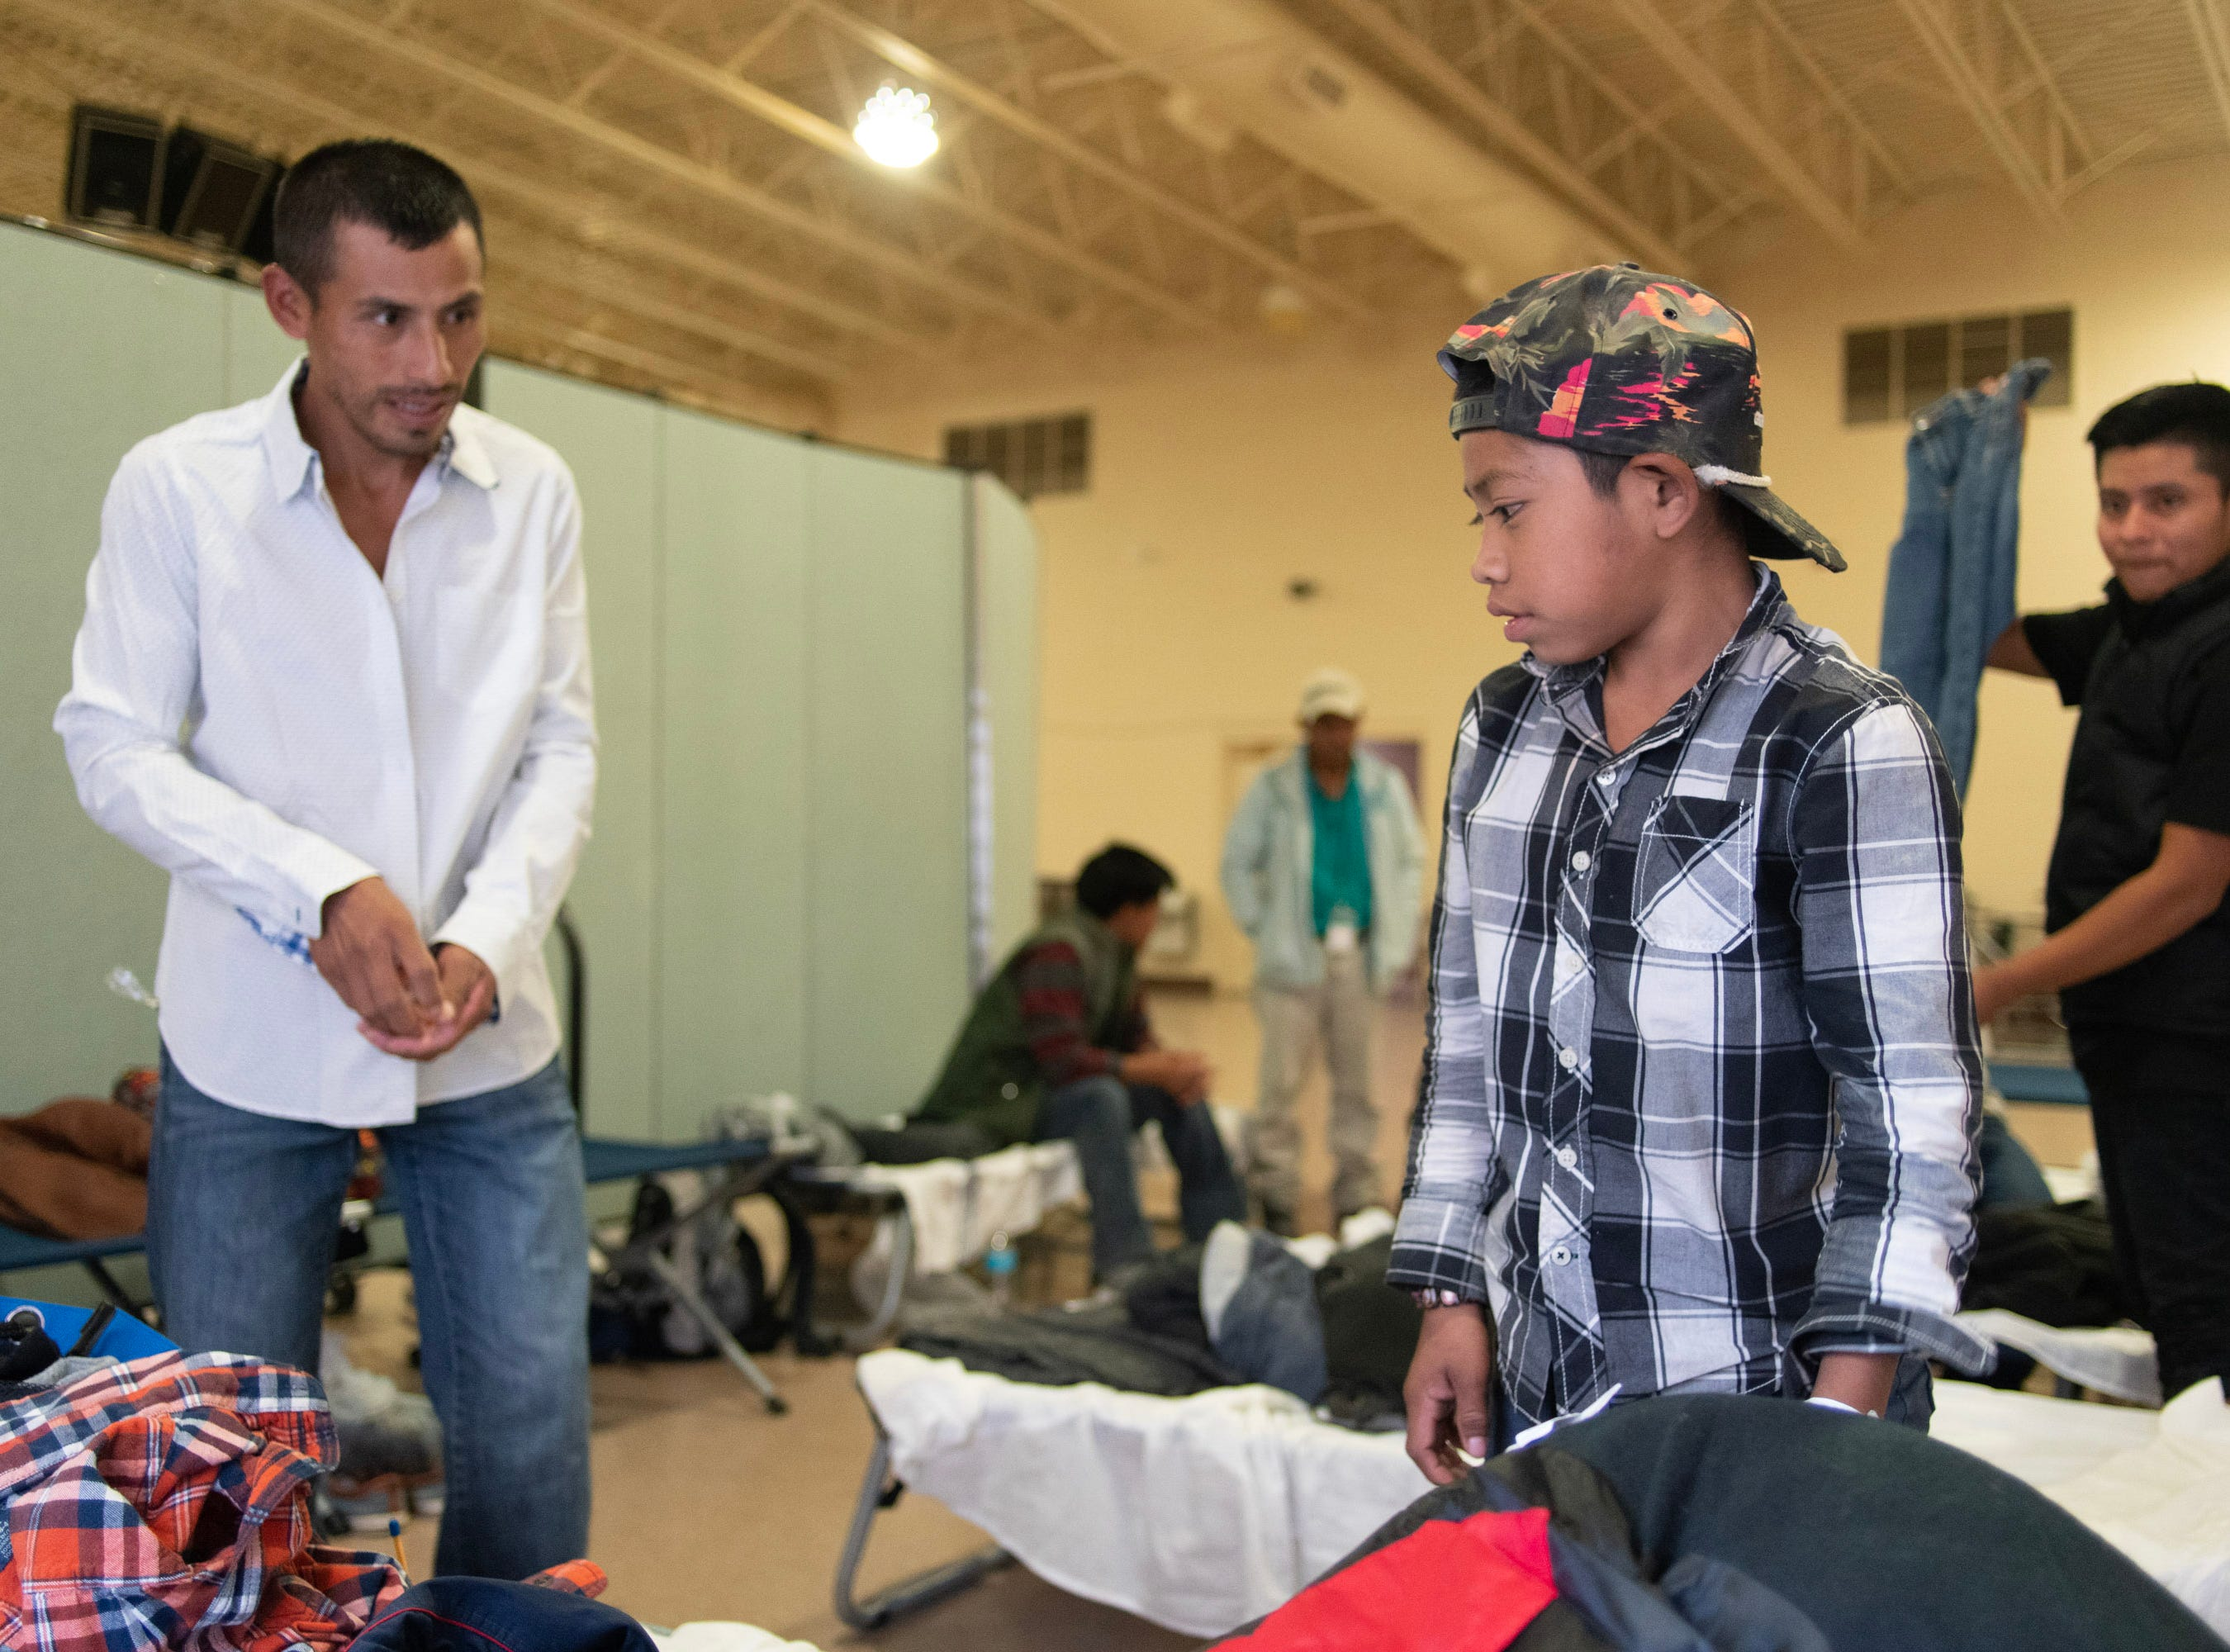 Vicente Yaxal and his son, Sergio, from Carchá, Alta Verapaz, Guatemala, at a migrant shelter in Doña Ana County.